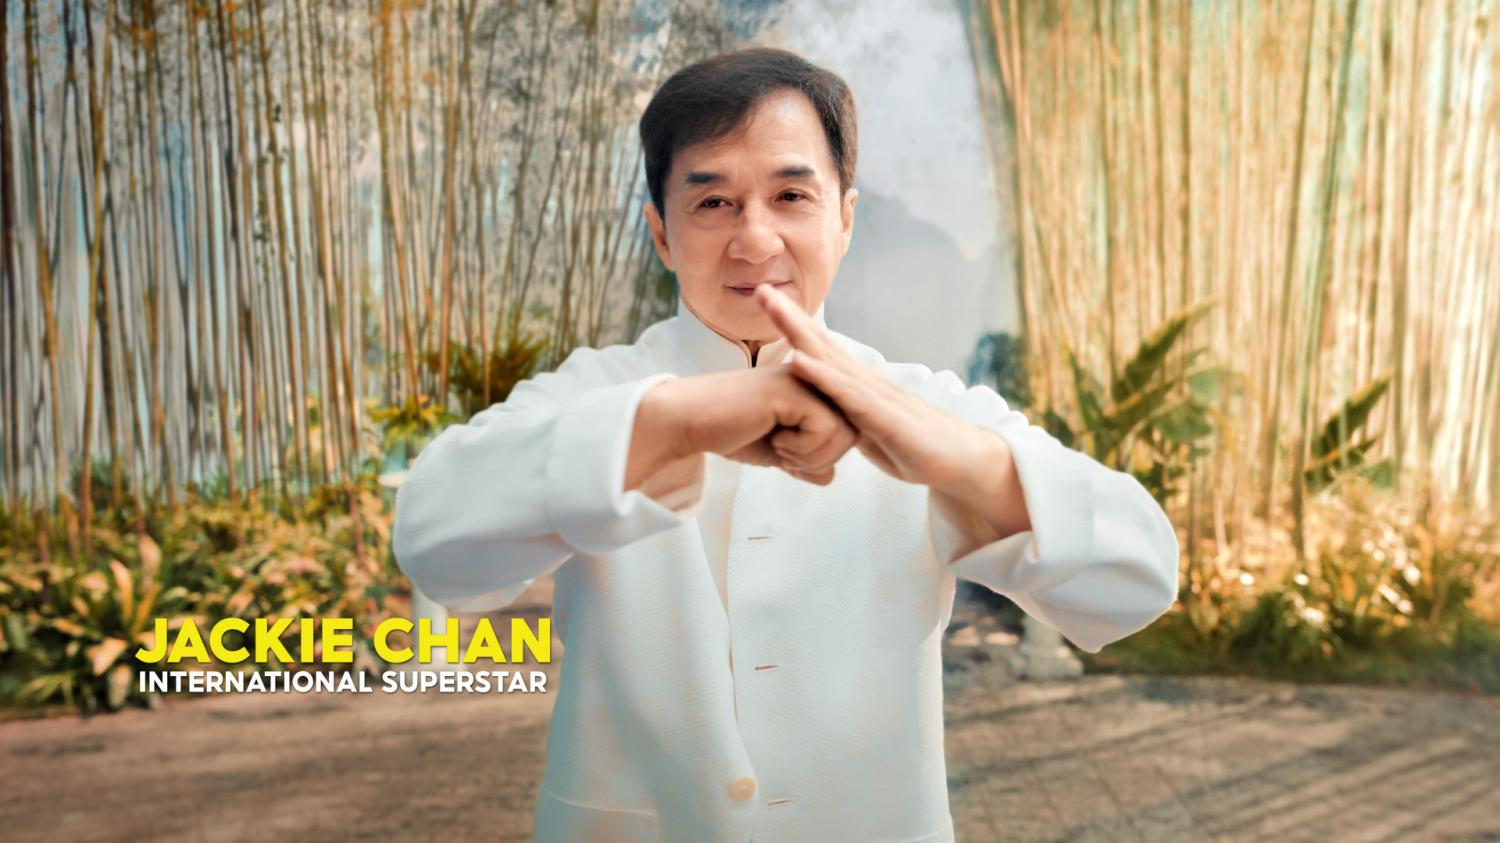 Jackie Chan, the legendary martial arts actor, joins Shopee to kick off the 9.9 Super Shopping Day with a kung fu-inspired commercial.